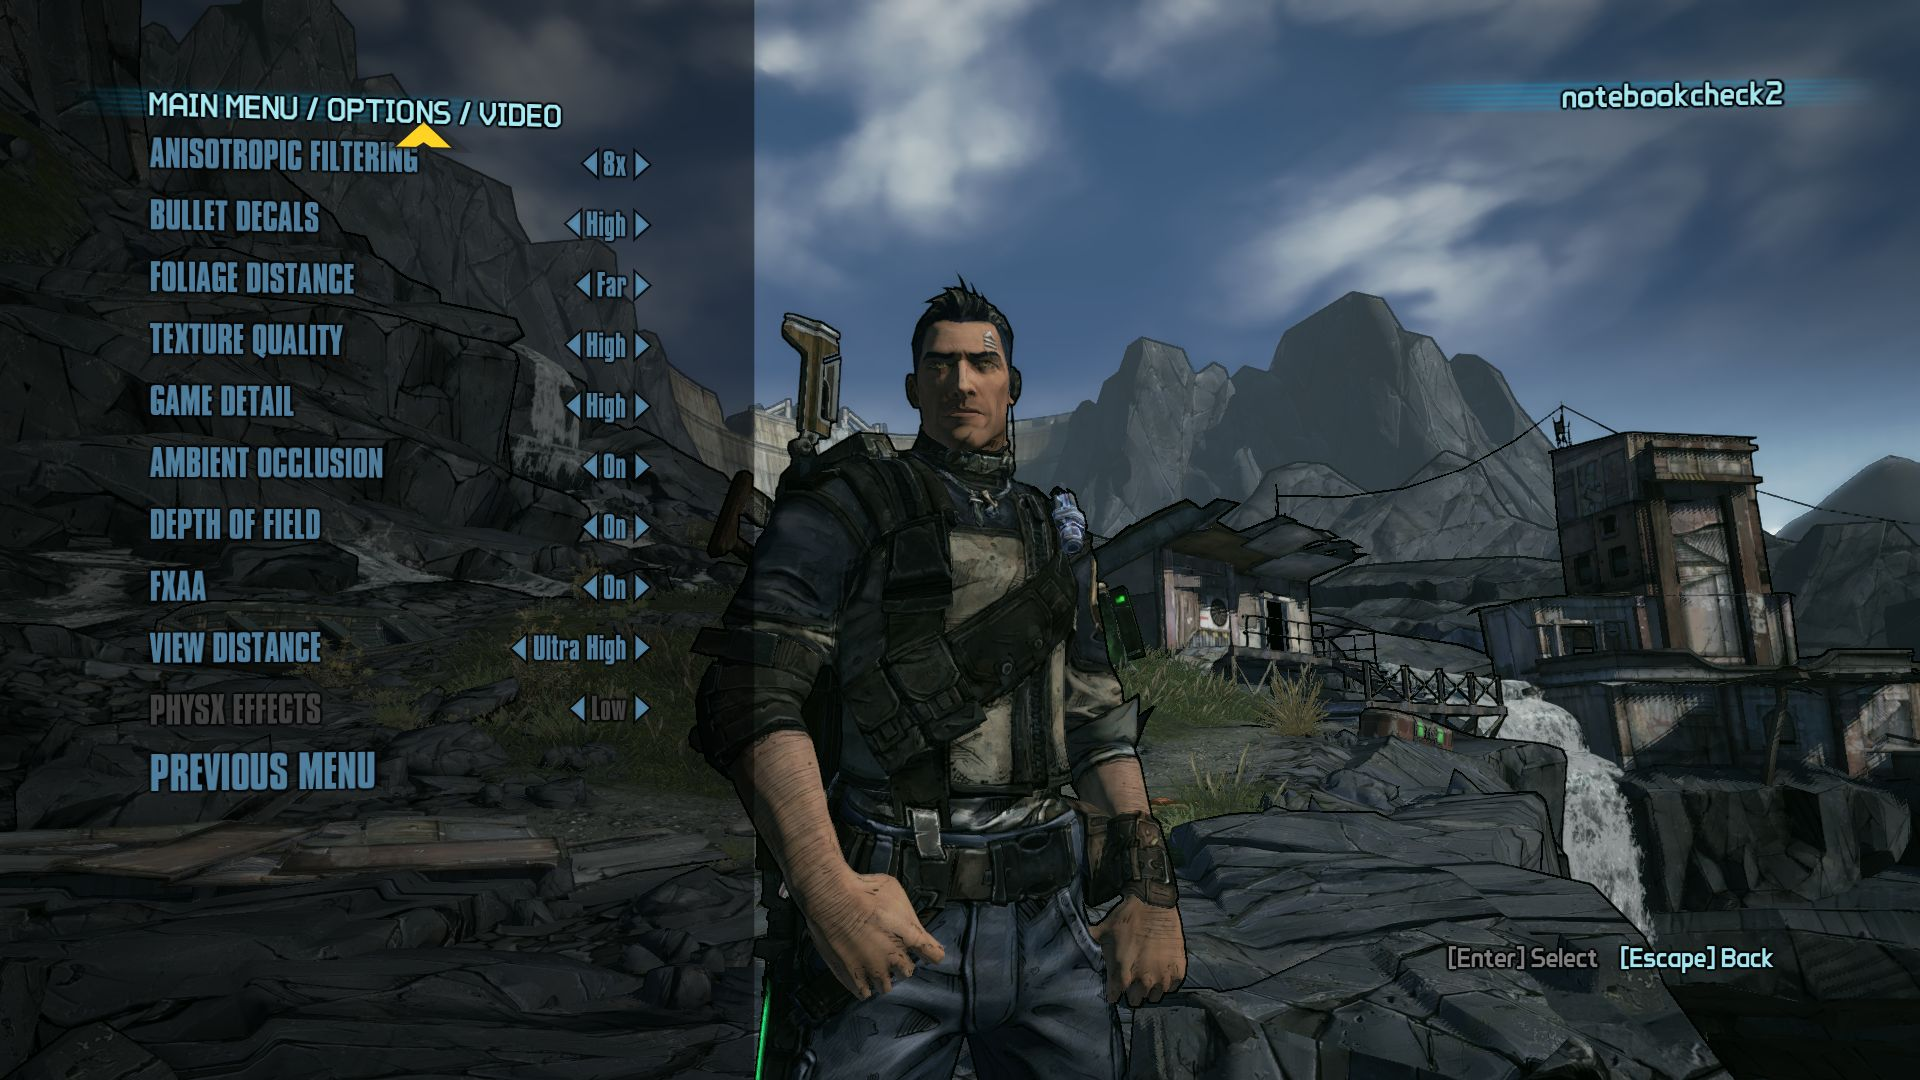 Smart Cover Reviews >> Borderlands 2 Benchmarked - NotebookCheck.net Reviews